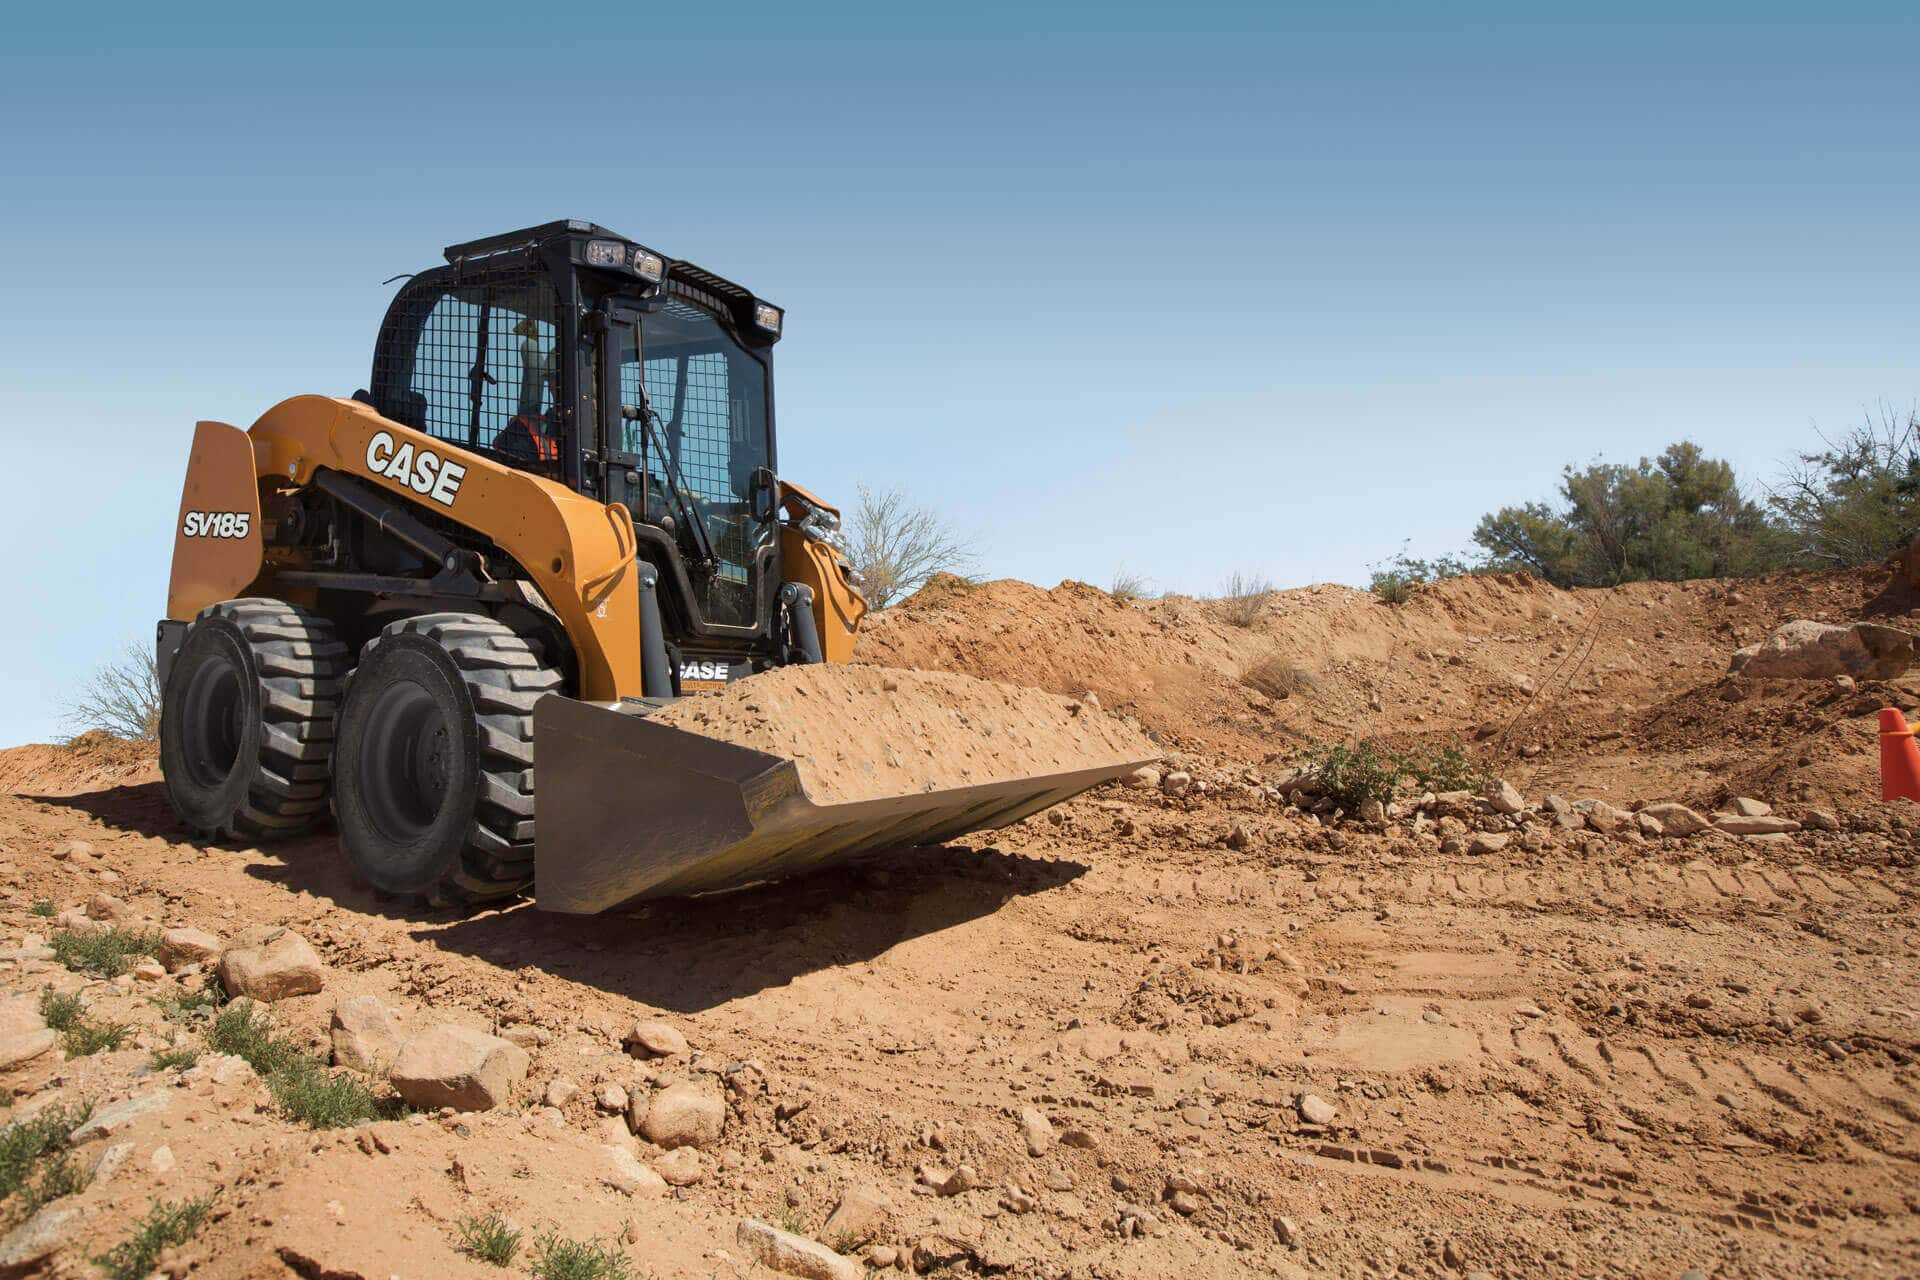 Case 1845c Skid steer service Manual on